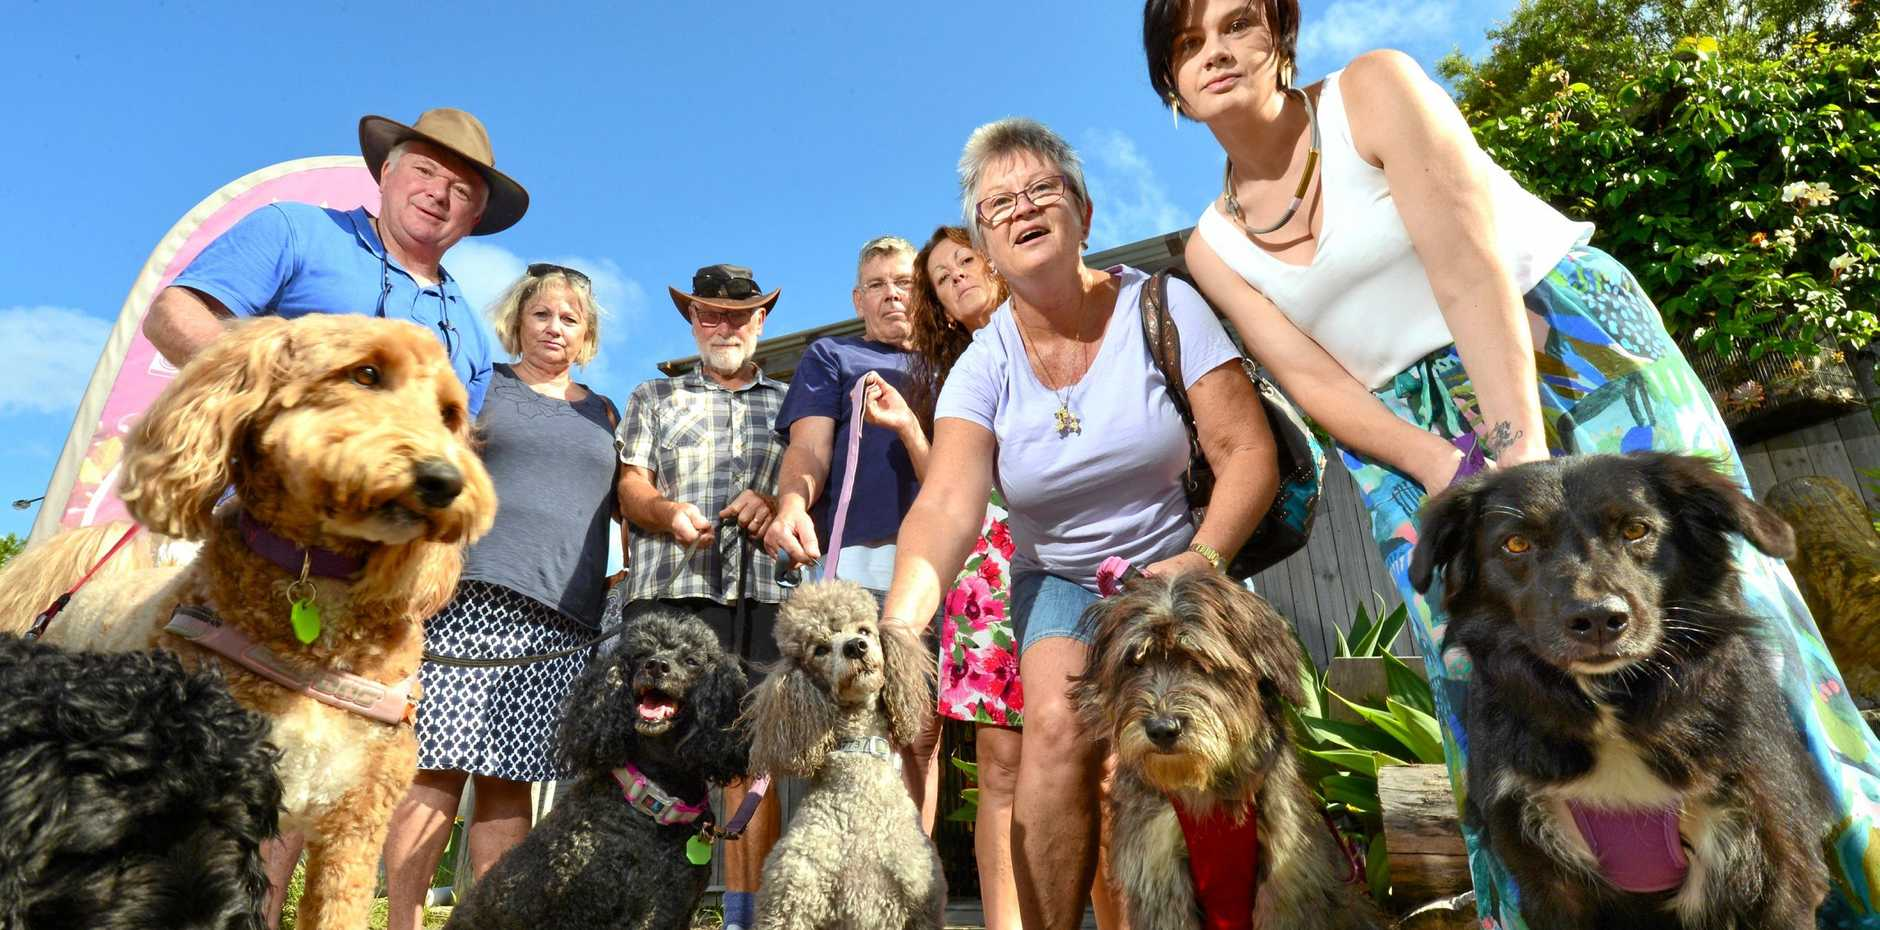 Spill de Beans Cafe in Pomona patrons are protesting the Noosa Council plans to close their dog-friendly back gate which will severely hinder business. Greg and Julie Maxwell, Eddie Johnson, Greg Dawson, Grace Semprevoni, Julie Dawson and Amanda Bennetts.